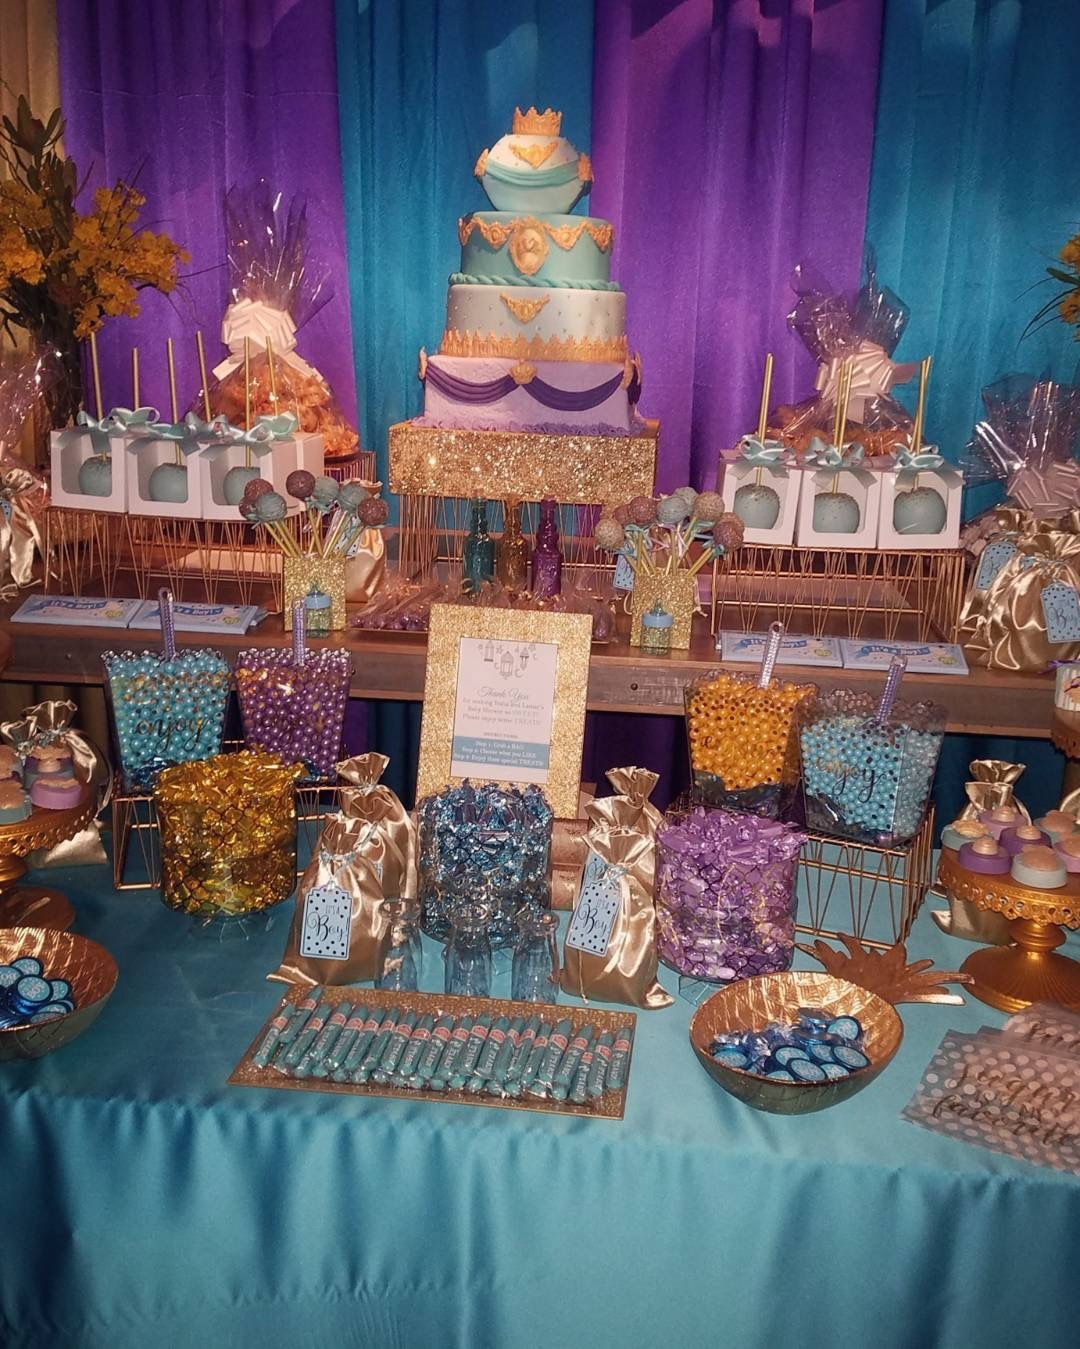 Stay Tuned For More Italia Smith Baby News, And Check Out Pictures From The  Moroccan Themed Baby Shower Below!